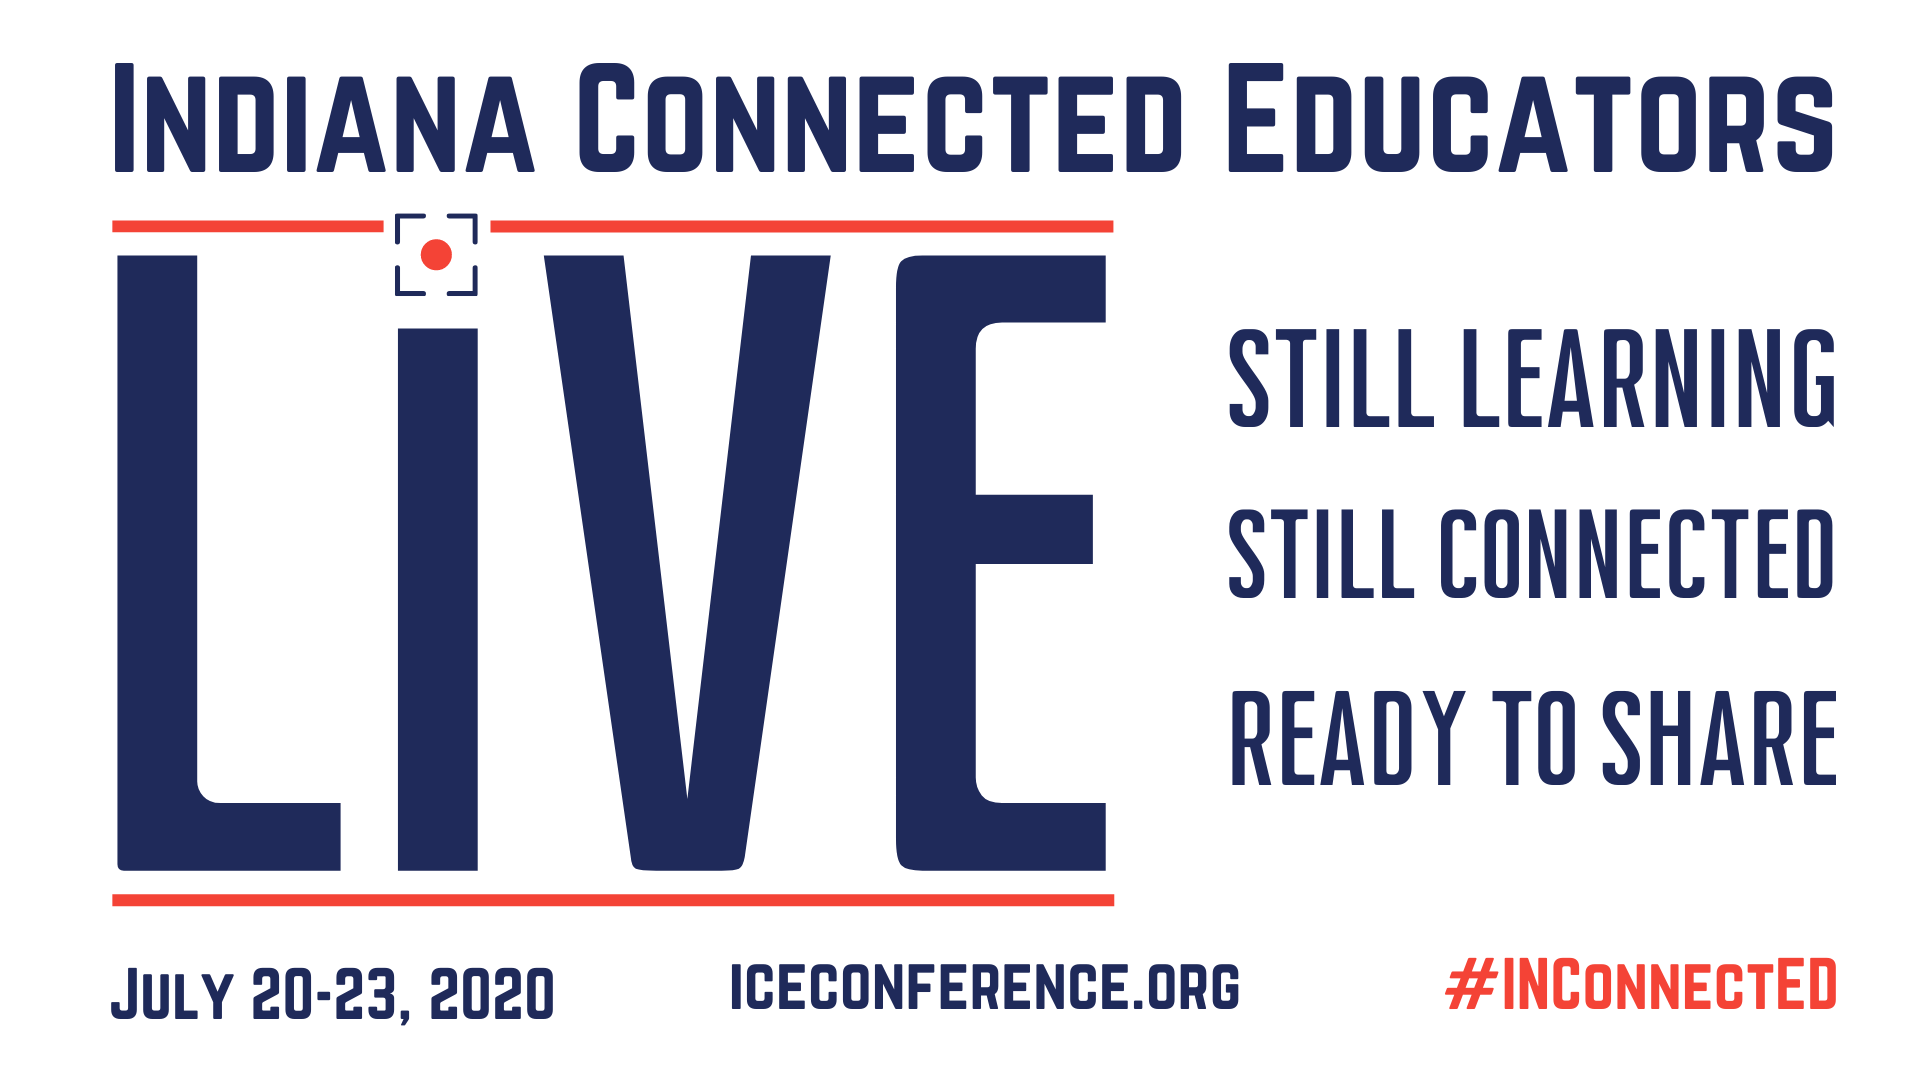 Indiana Connected Educators LiVE